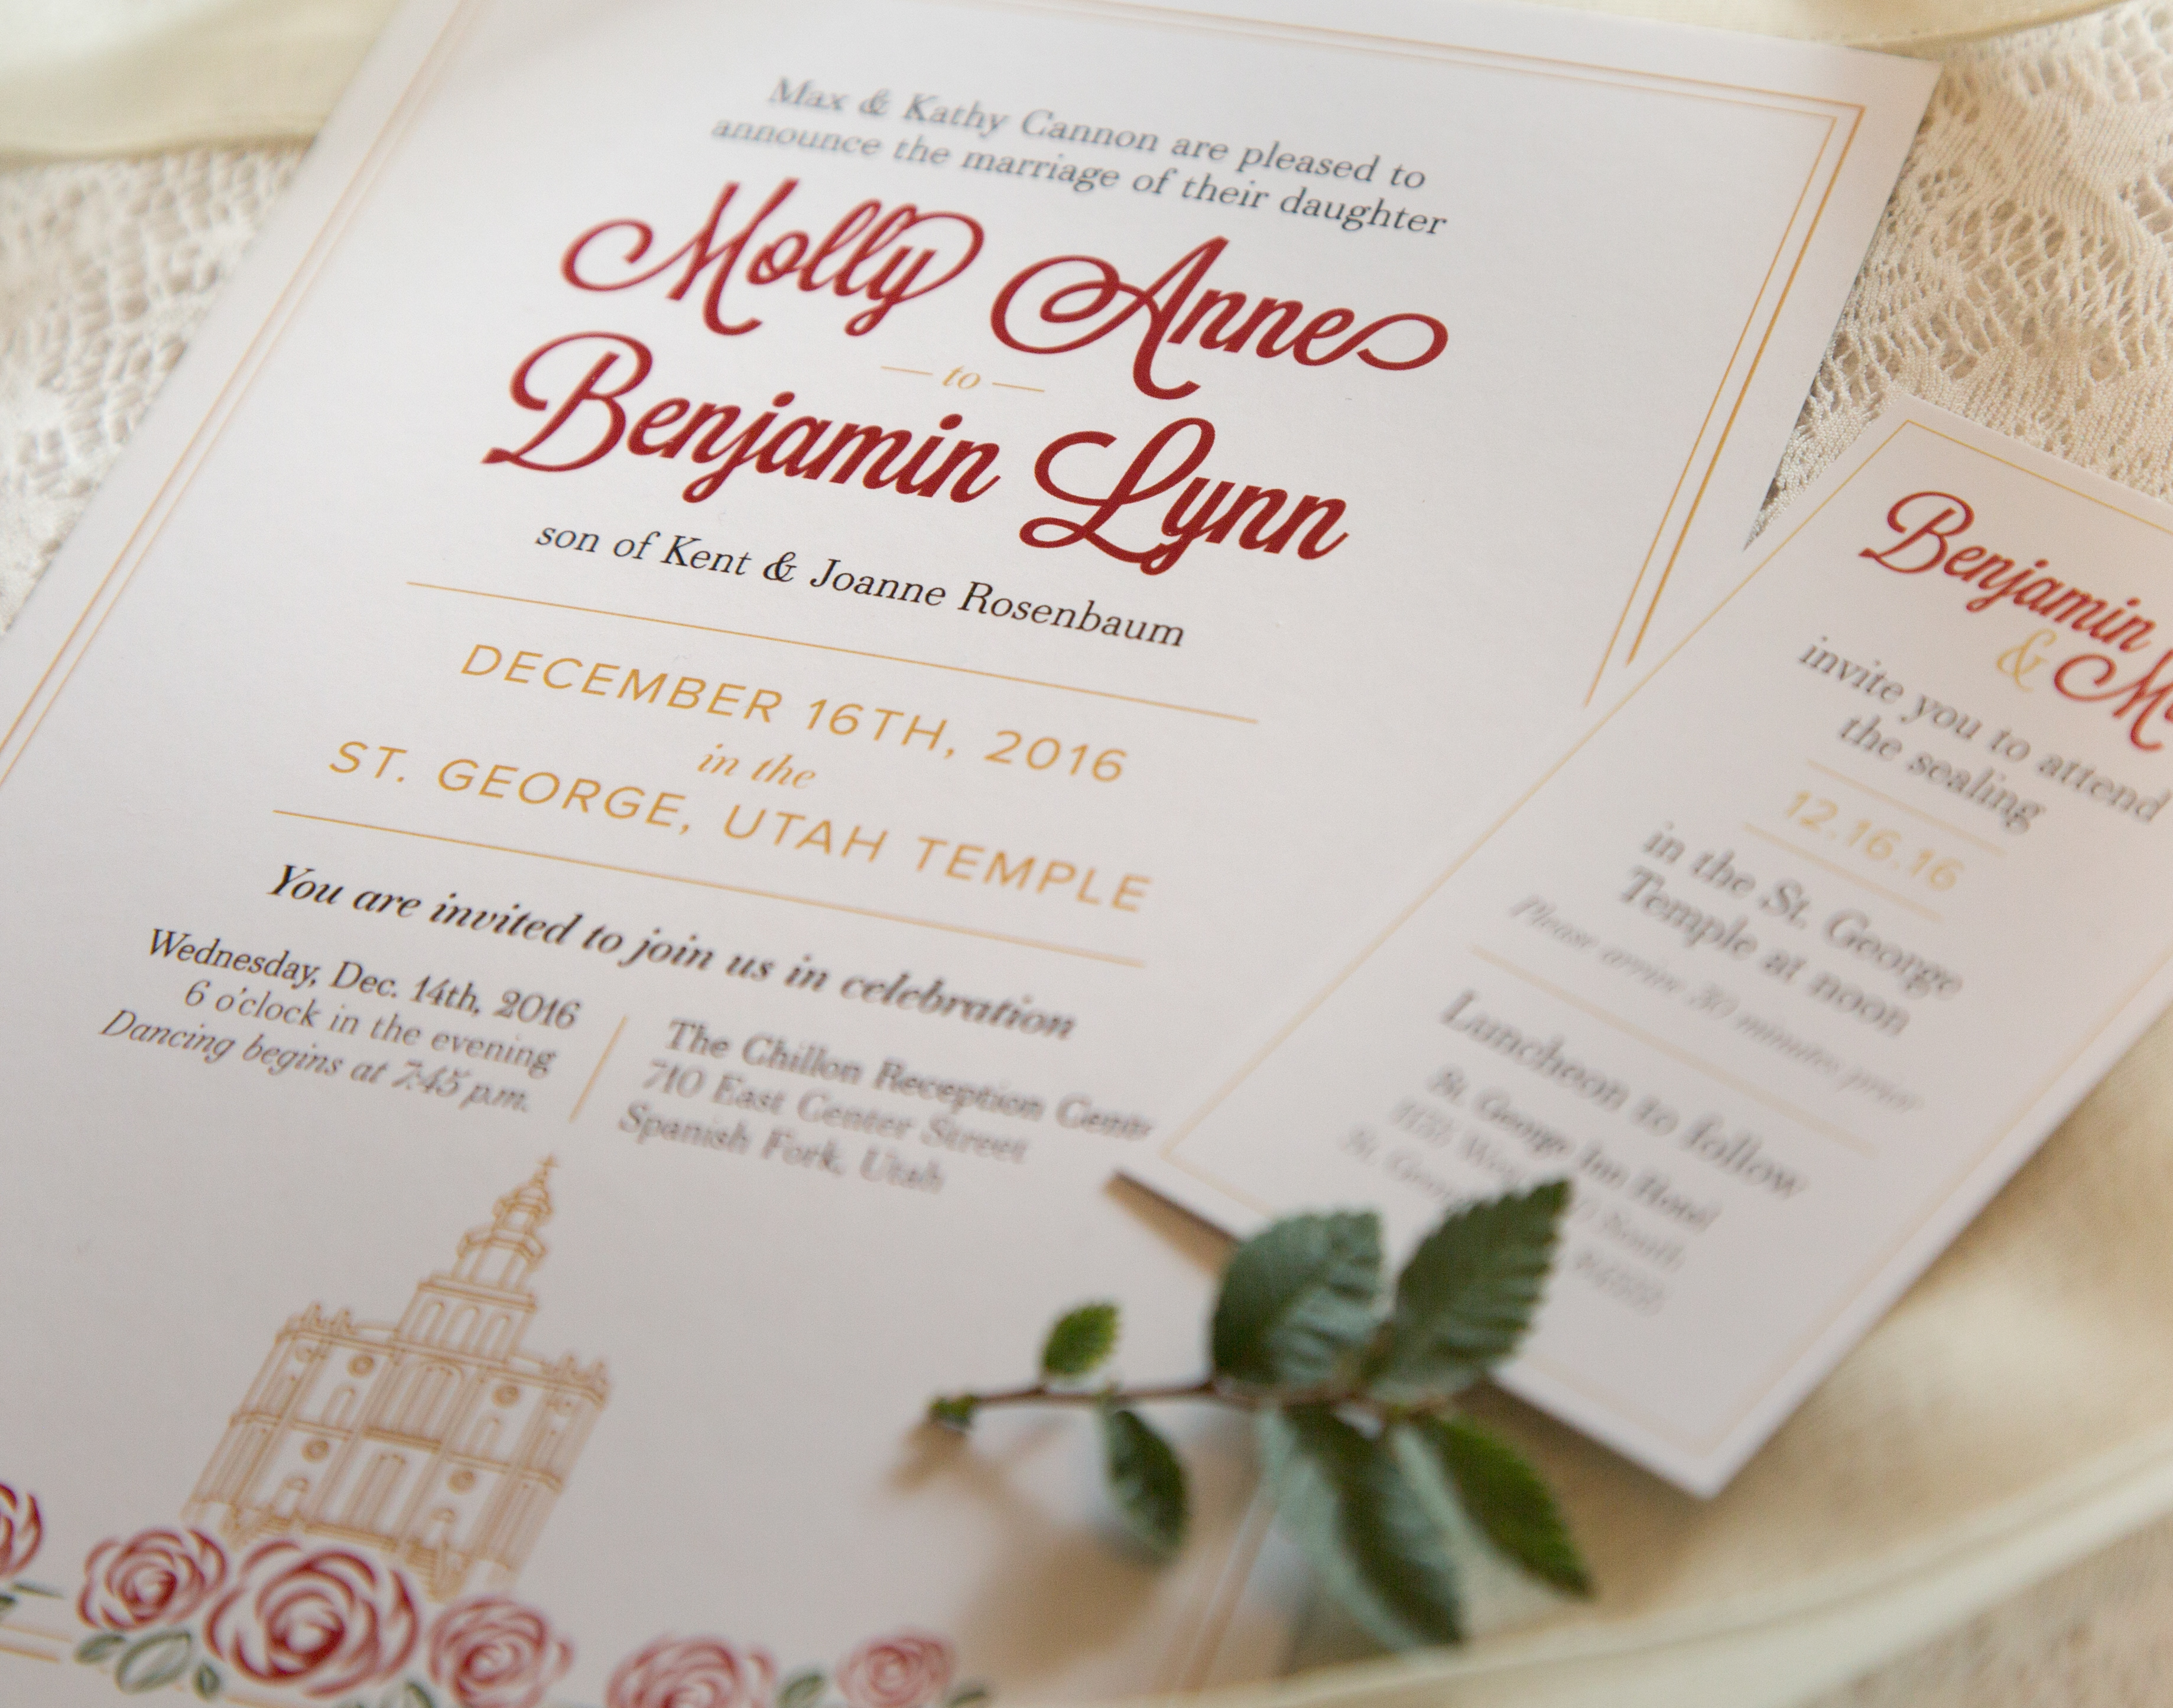 Kaylee dunn design temple roses wedding invitation pinacate middle school houses branding monicamarmolfo Images